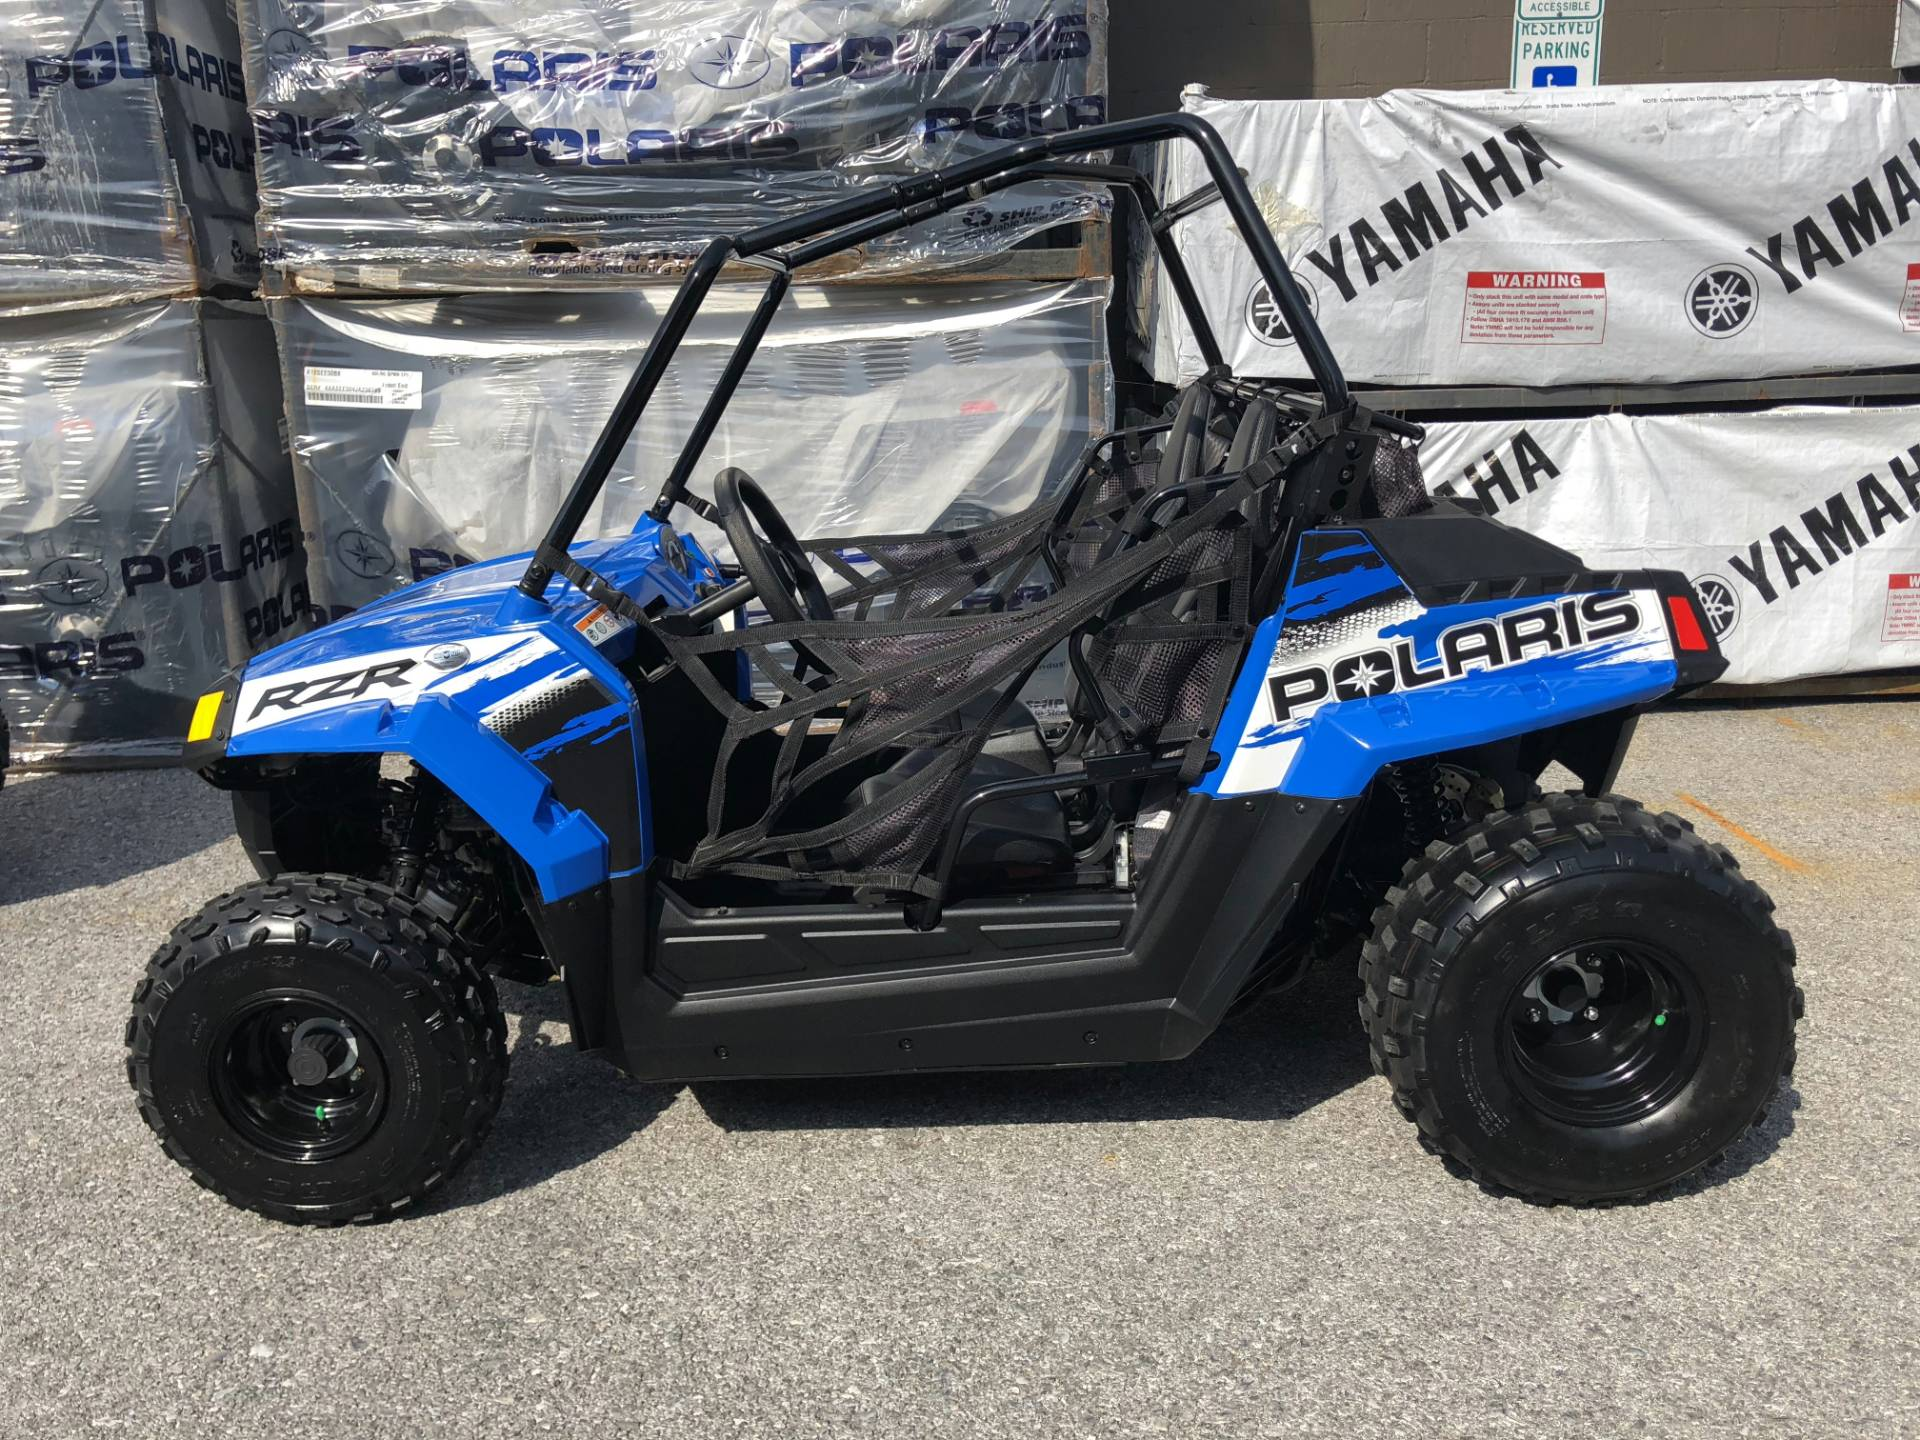 2016 Polaris RZR 170 EFI for sale 201831